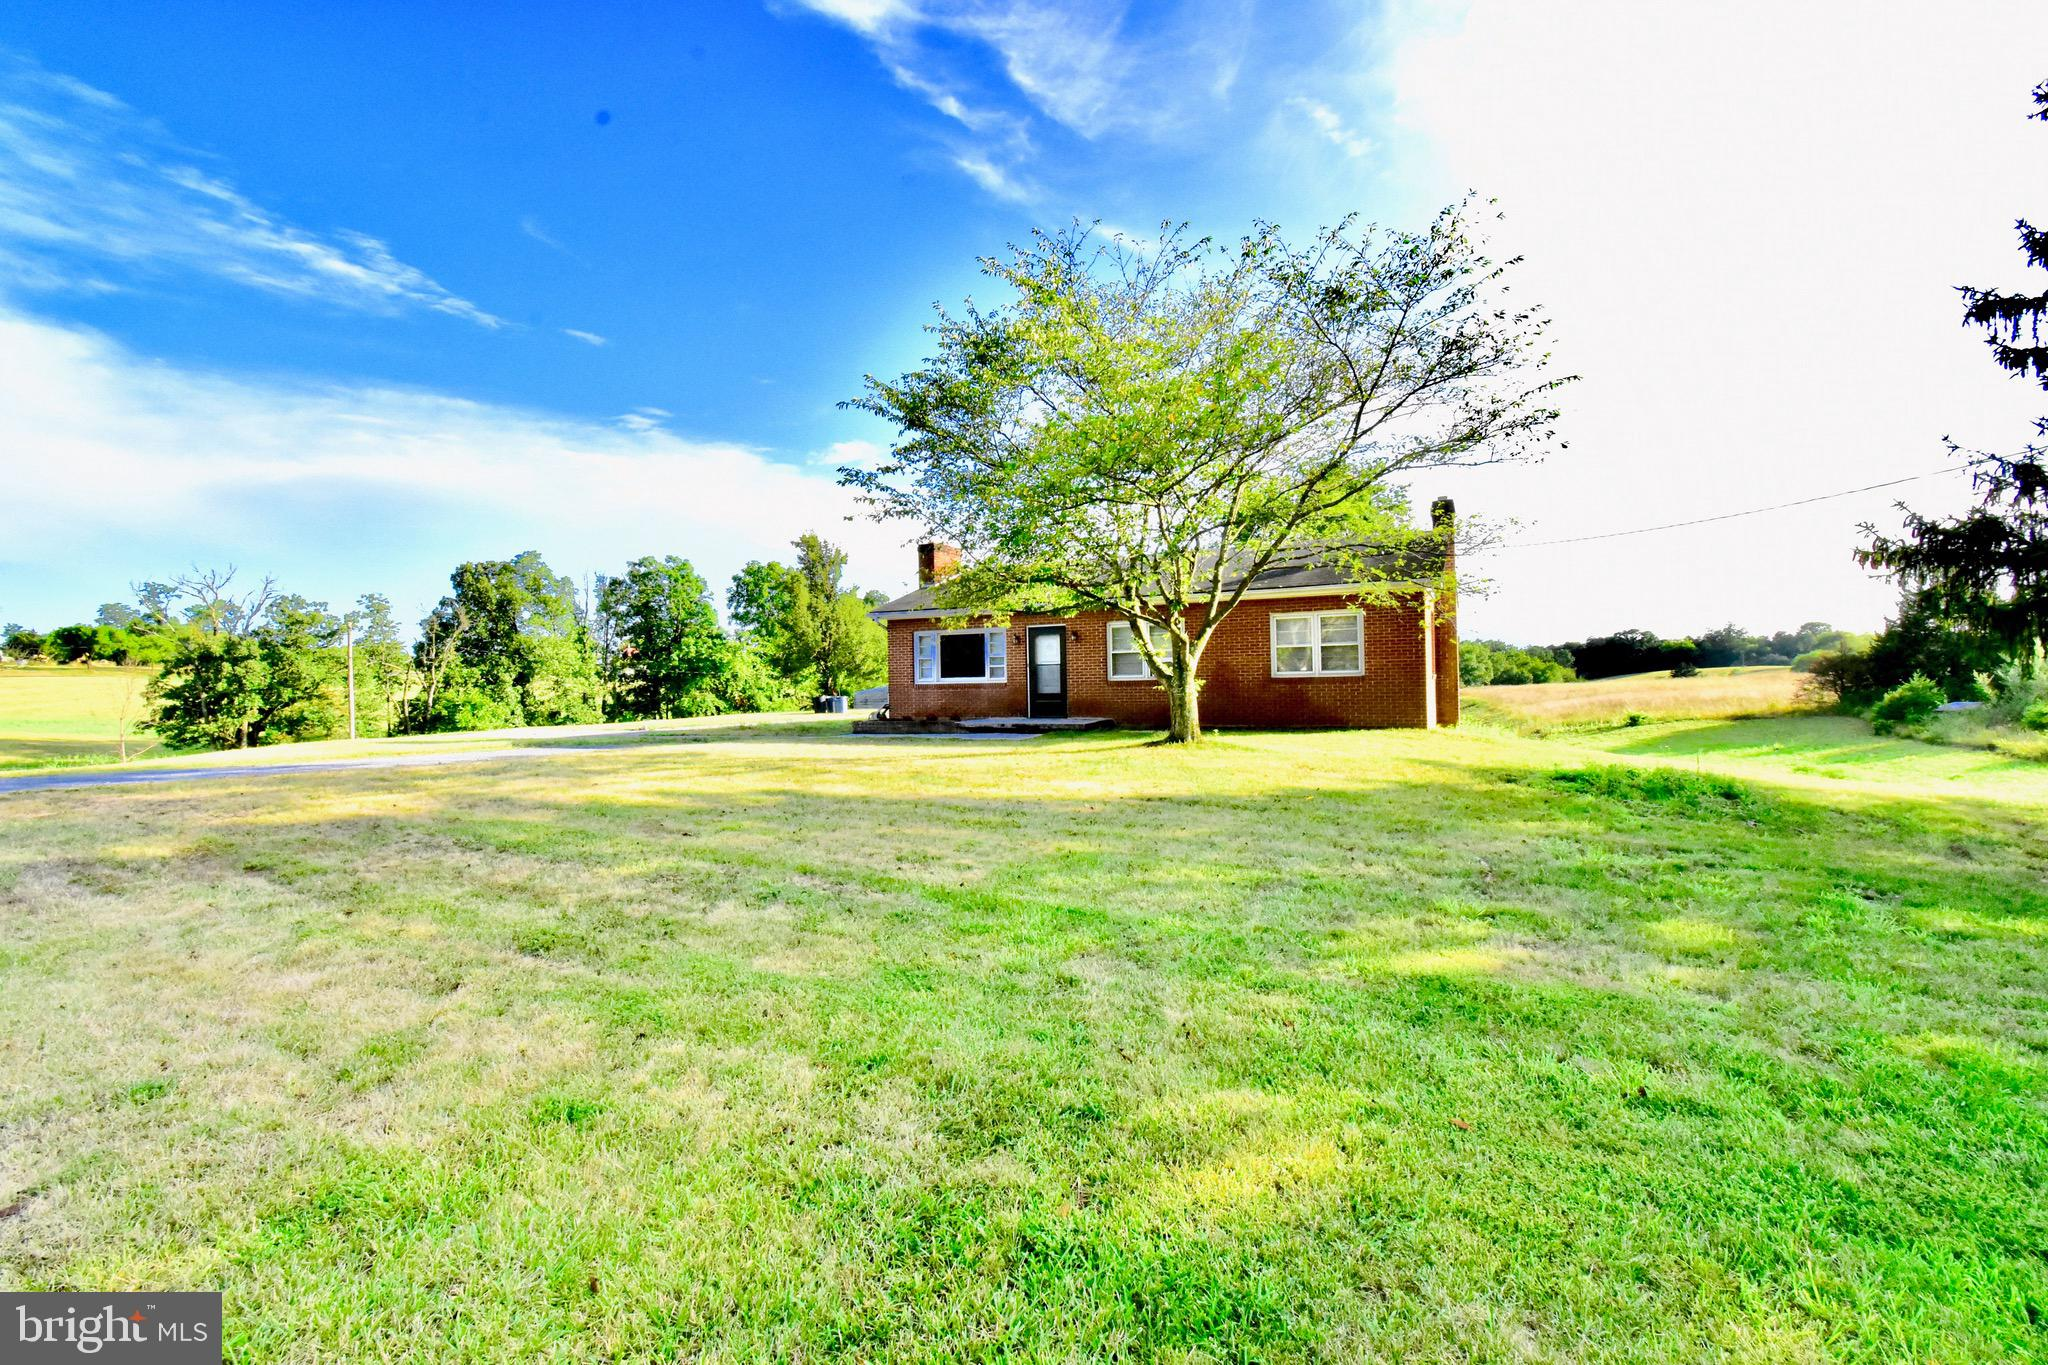 Spectacular opportunity in Middletown, VA. Unrestricted 6.6 acres with a solid brick ranch home, 5 bay garage and pond site cleared and dug. Welcome to where convenience meets affordability! Less than 3 miles to I 81 and I 66 with no HOA or restrictions! 3 bedroom 1 bath home with partially finished basement ready for your customization.  There is plenty of potential in the walk out lower level, with most of the work done to double your living space!  The kitchen has recently been upgraded with stainless steel appliances, butcher block counters and new flooring.  There is a huge garage with unlimited potential. The land is suitable for horses or livestock and eligible for tax incentives if you should choose to use it for agriculture.  Huge rear covered  deck overlooking the pond site.  Interior photos to be up soon.